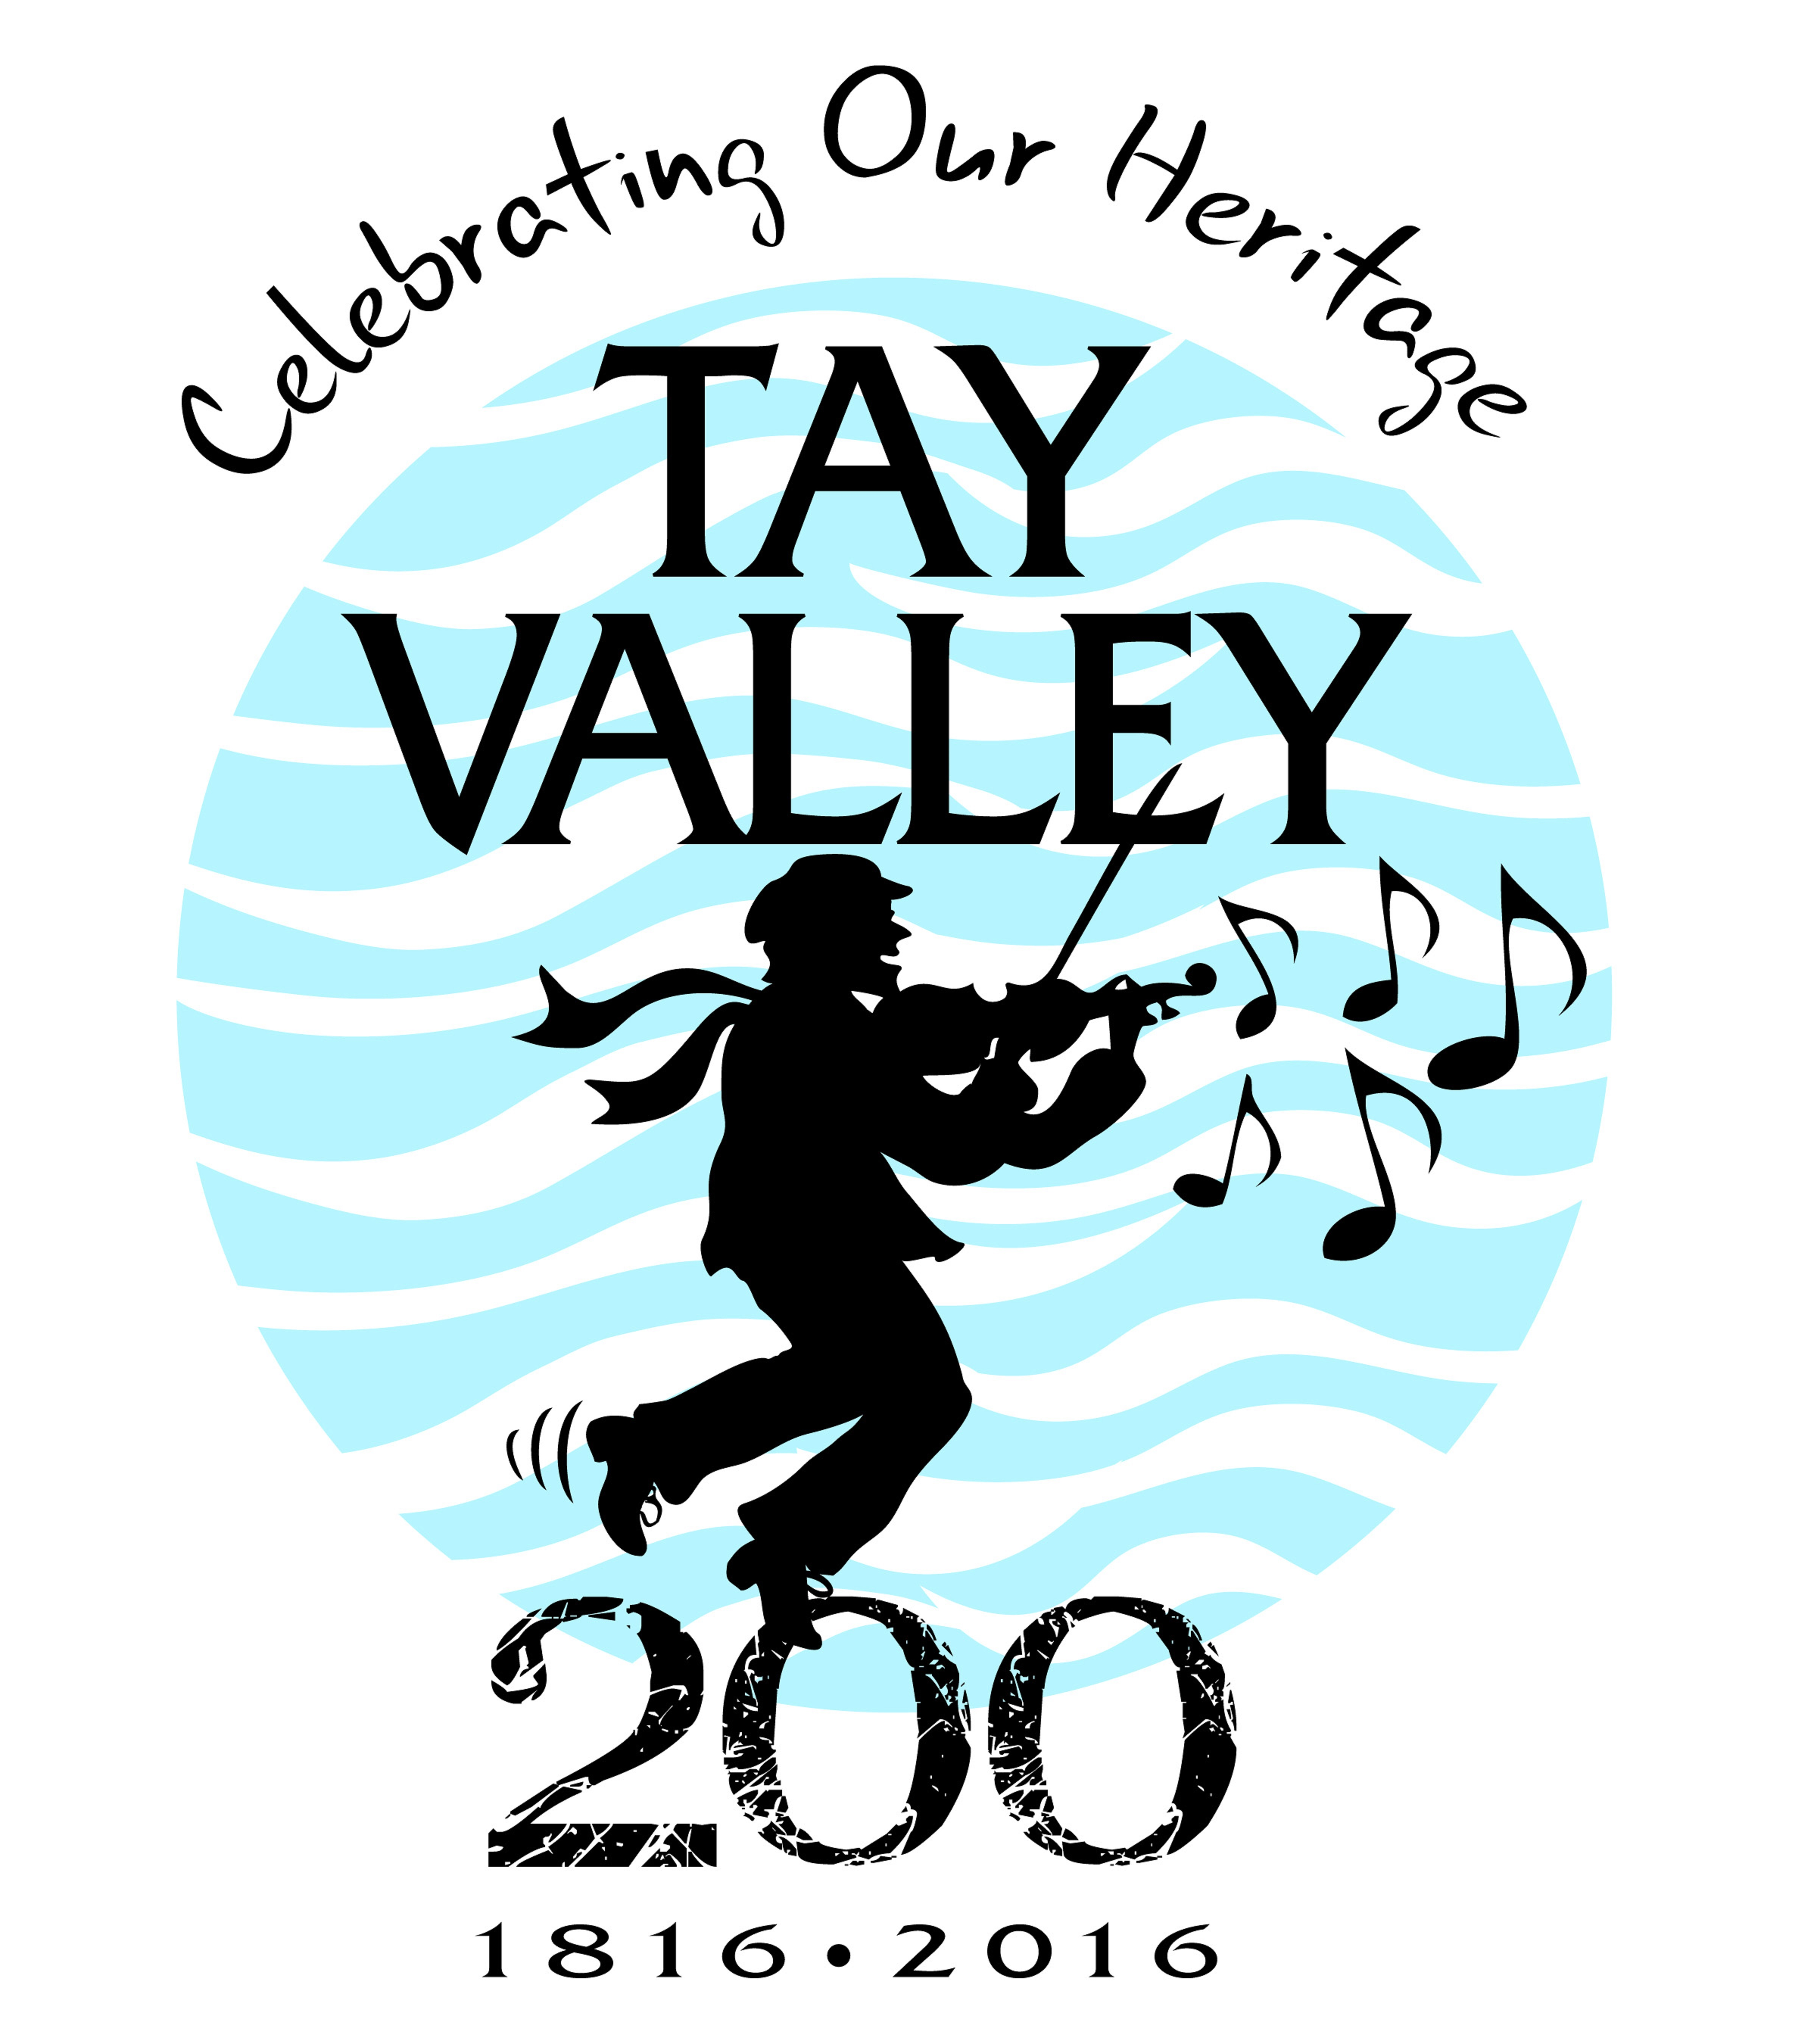 TAY VALLEY 200 Logo with Slogan and Dates